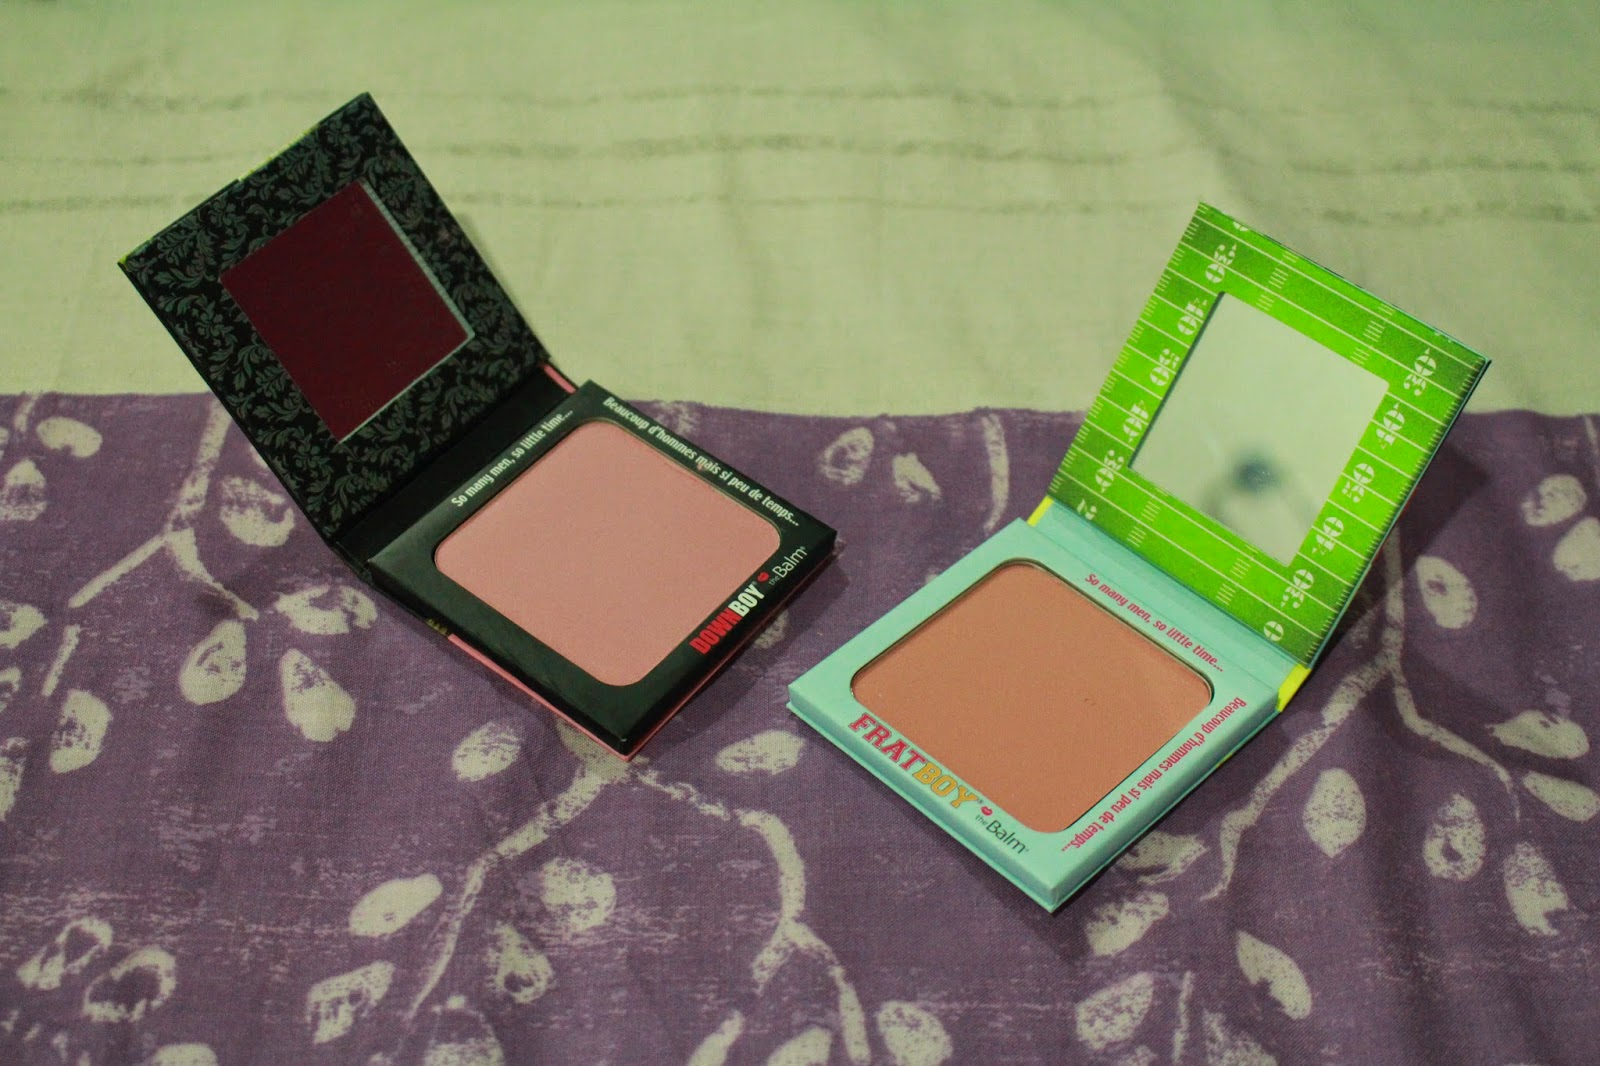 The Balm Frat Boy and Down Boy blushers